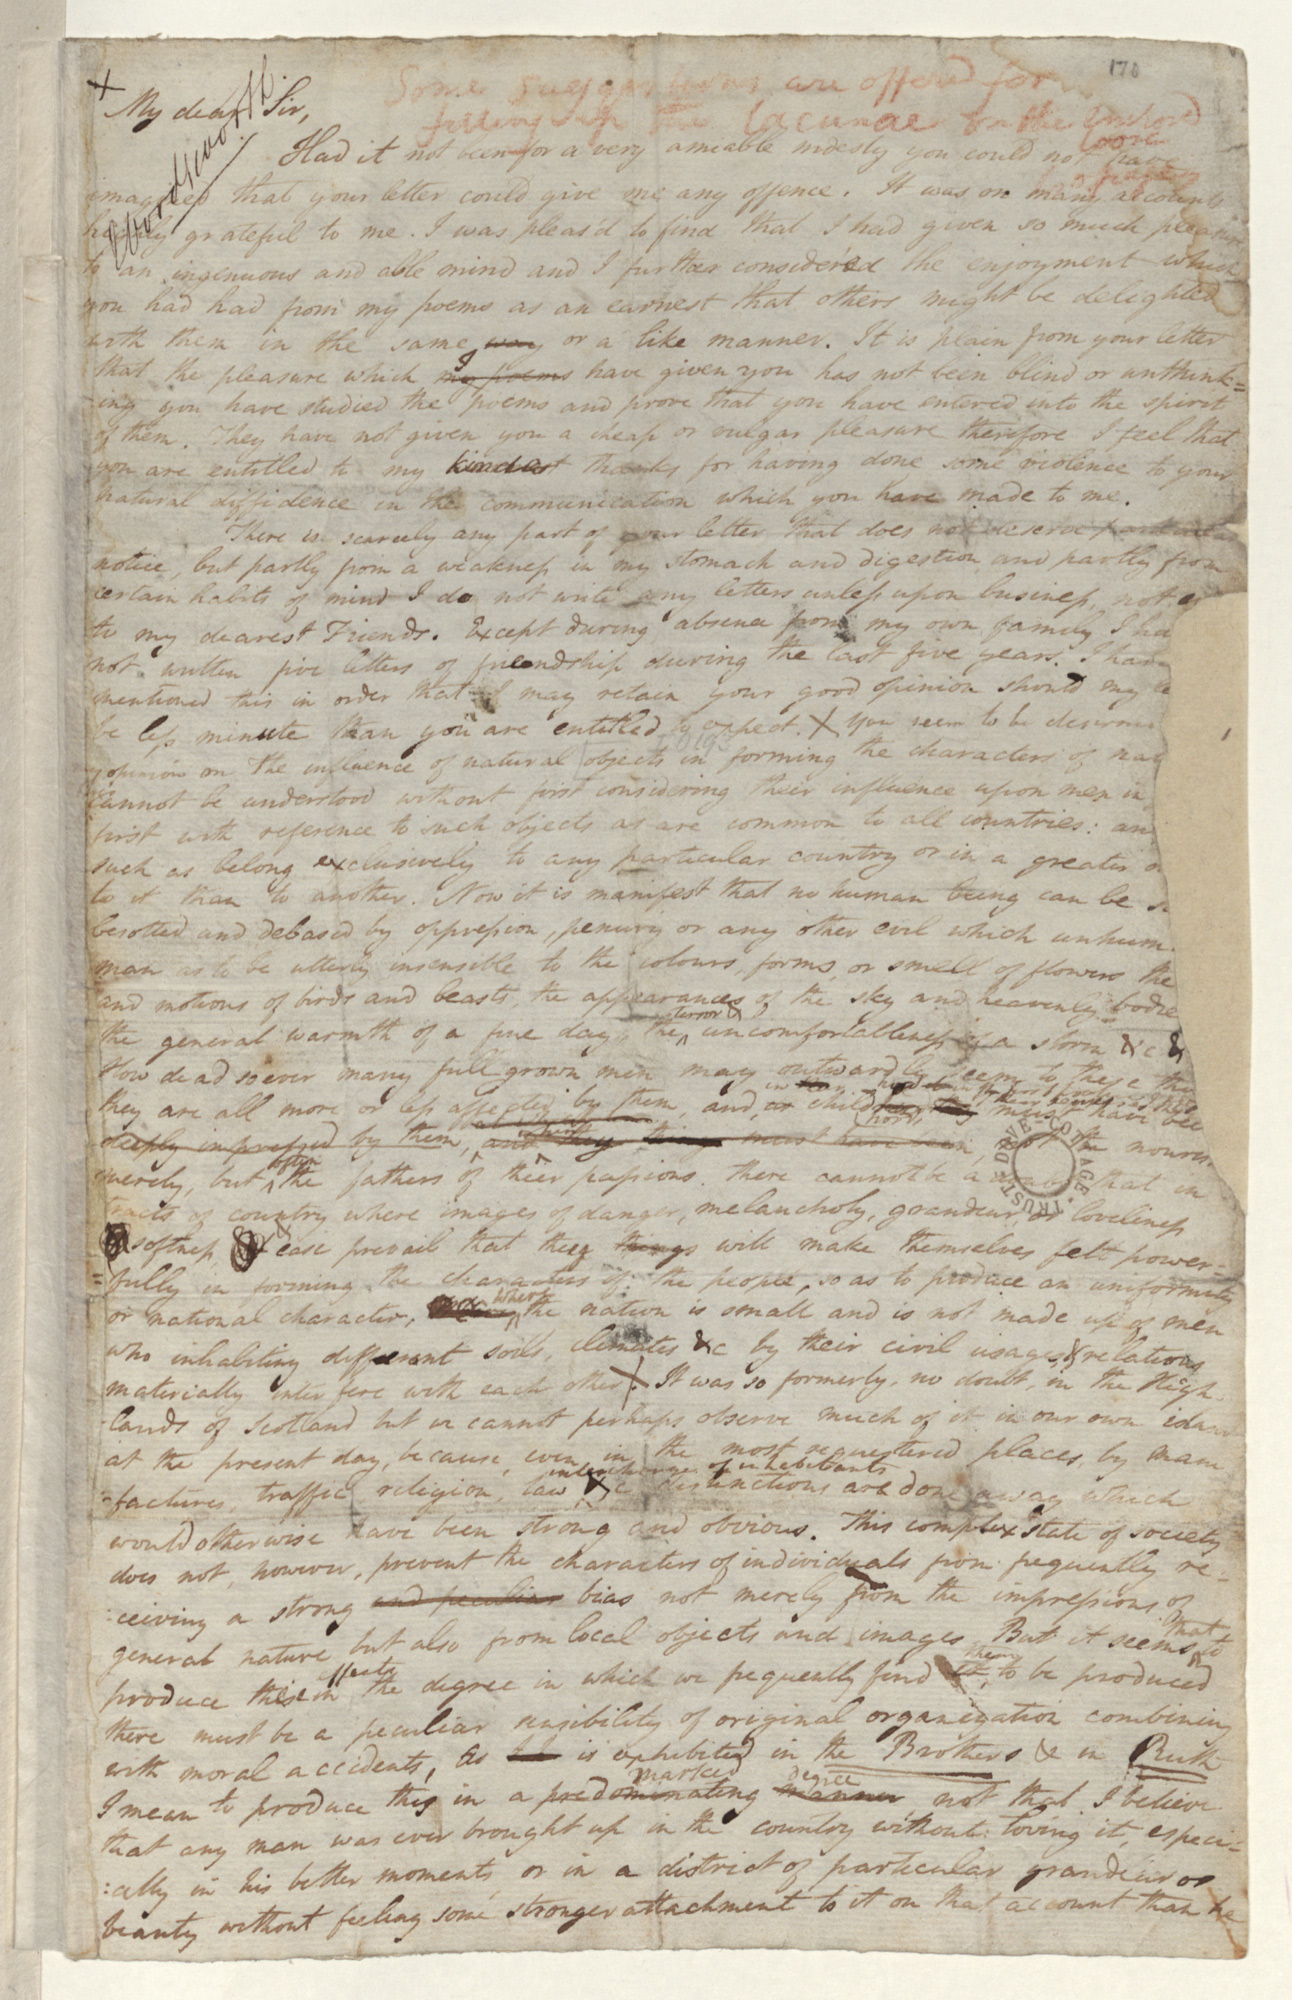 Letter from William Wordsworth to John Wilson, 1802